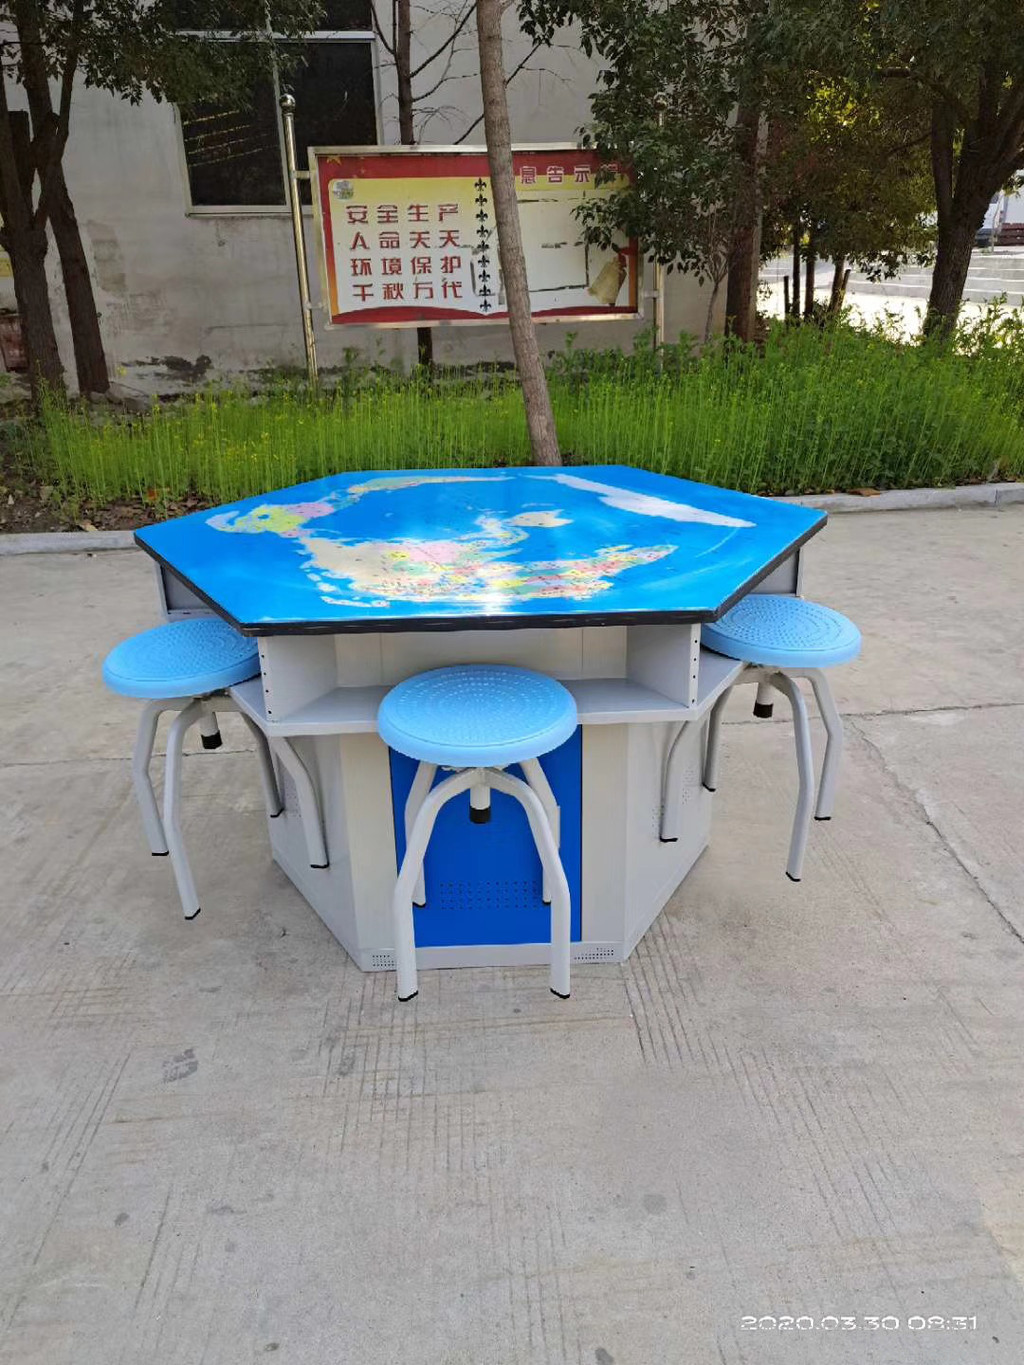 hexagonal table for lab, split six-sided table and chair set, table for school lab, school Featured Image